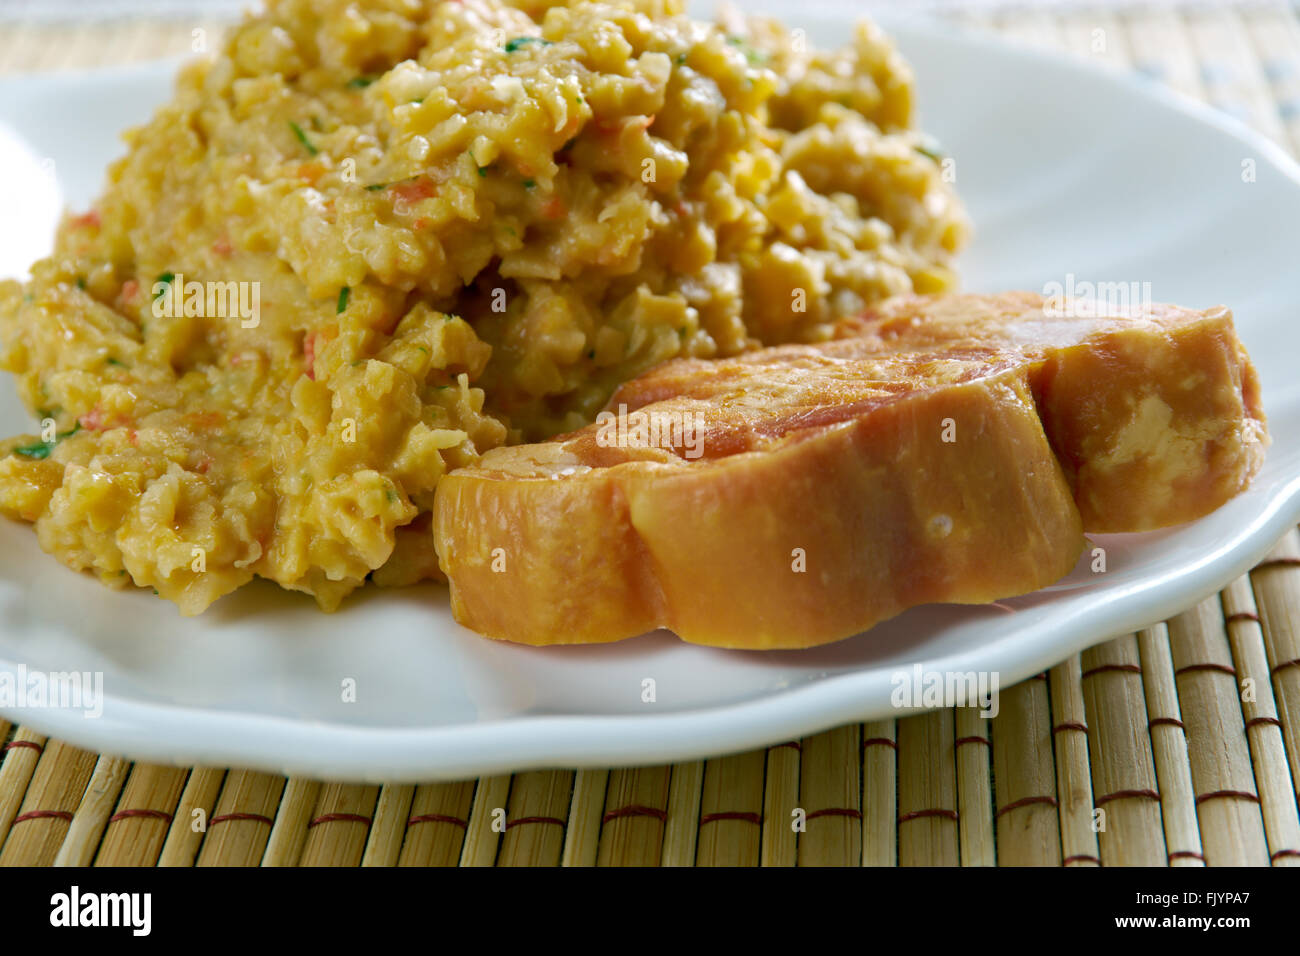 Matevz pureed beans - Slovene national dish.made of beans and potatoes.Slovenian cuisine - Stock Image